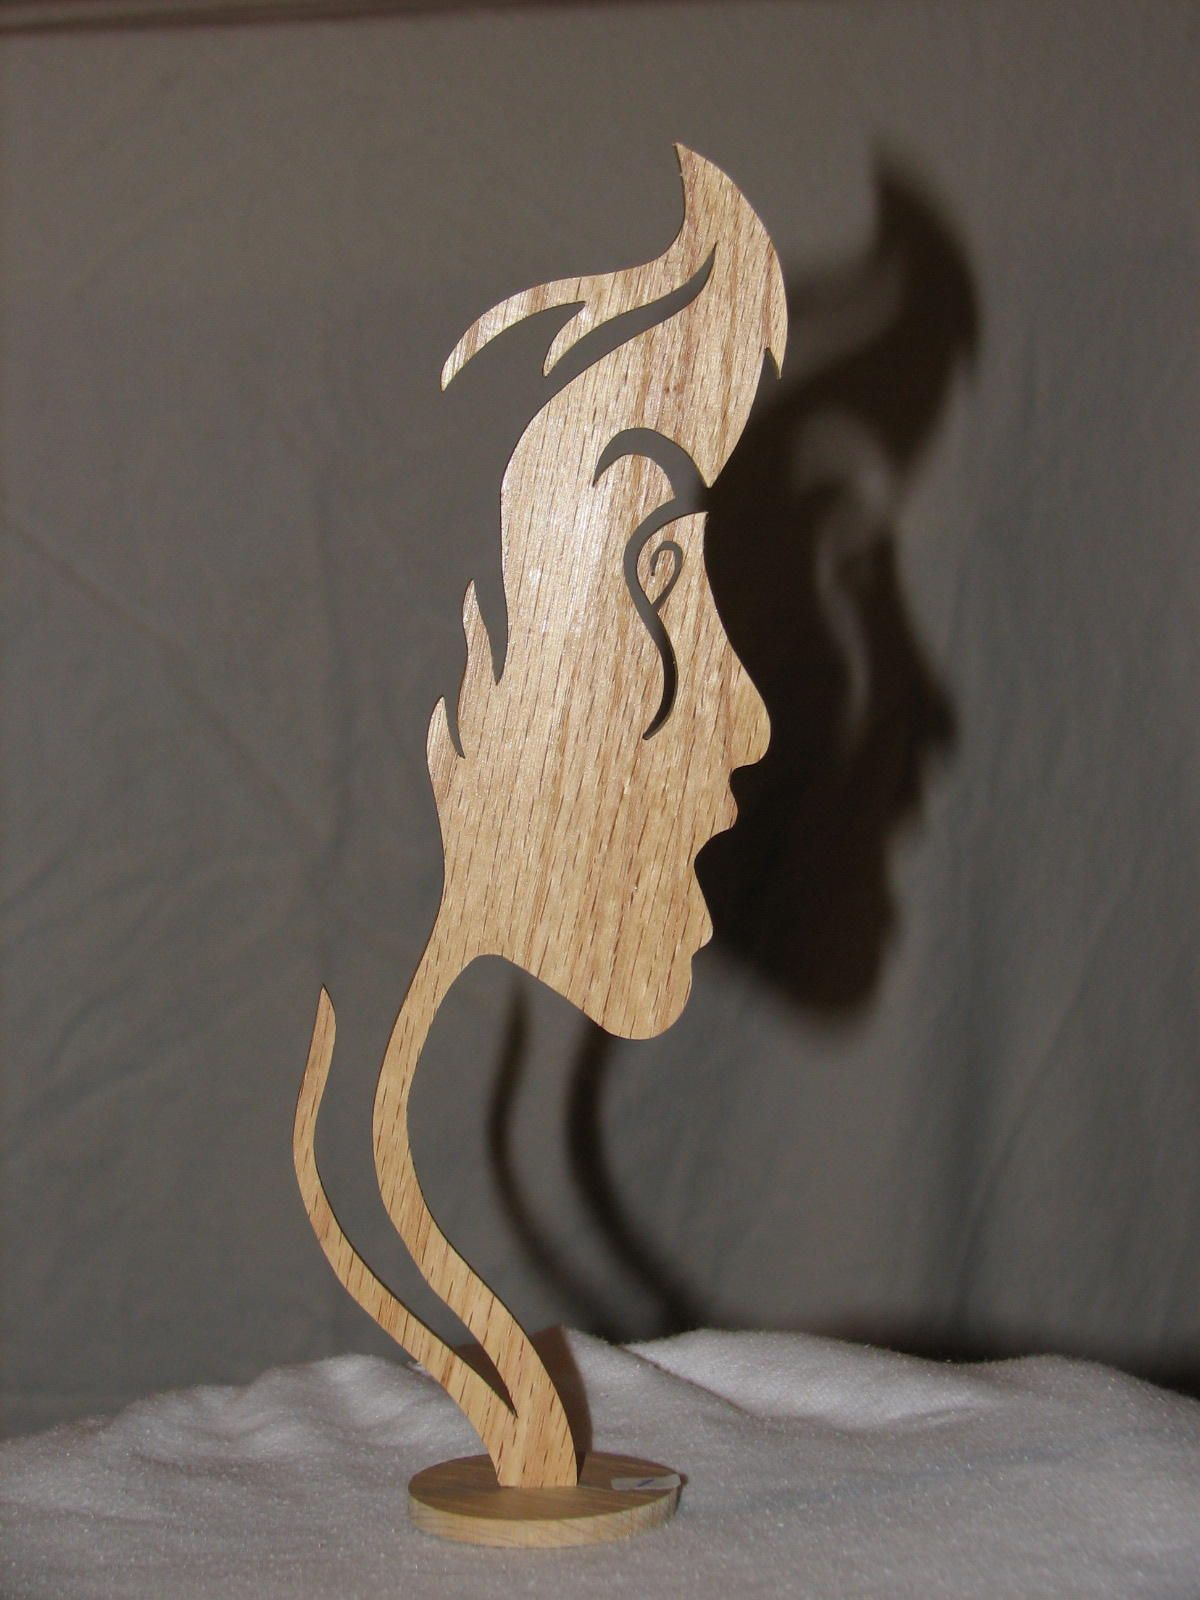 Girl Face Silhouette This Particular Work Is 1 8 Thick Giving It A More Delicate Appearance Normally Made O Wood Carving Art Wood Art Scroll Saw Patterns